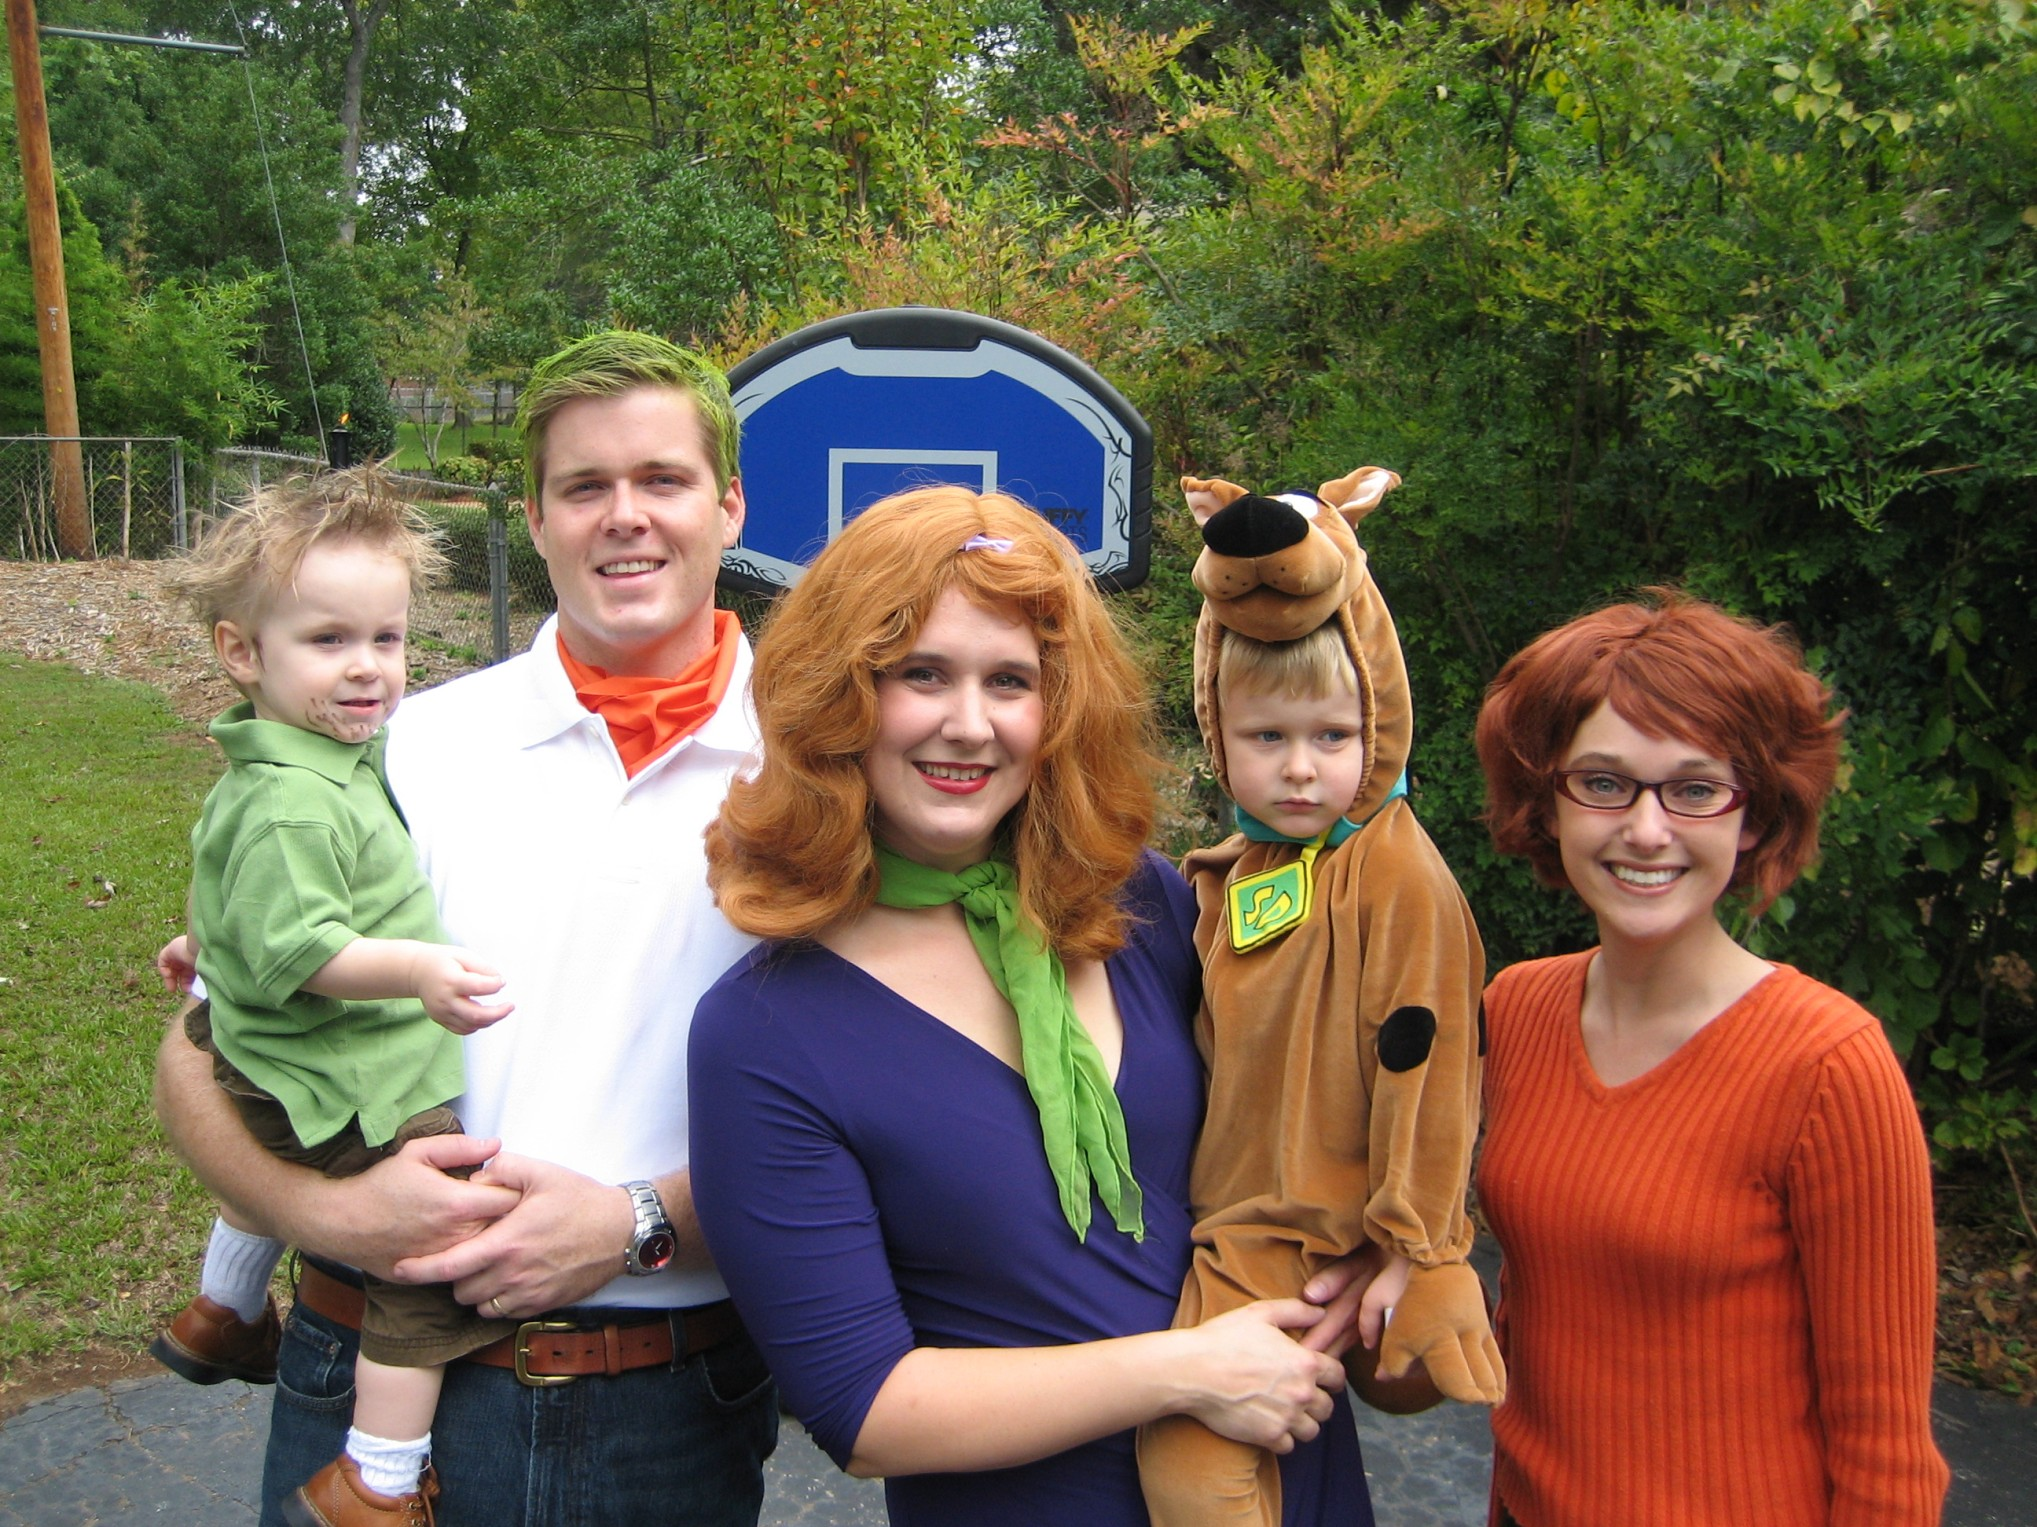 The Scooby Family